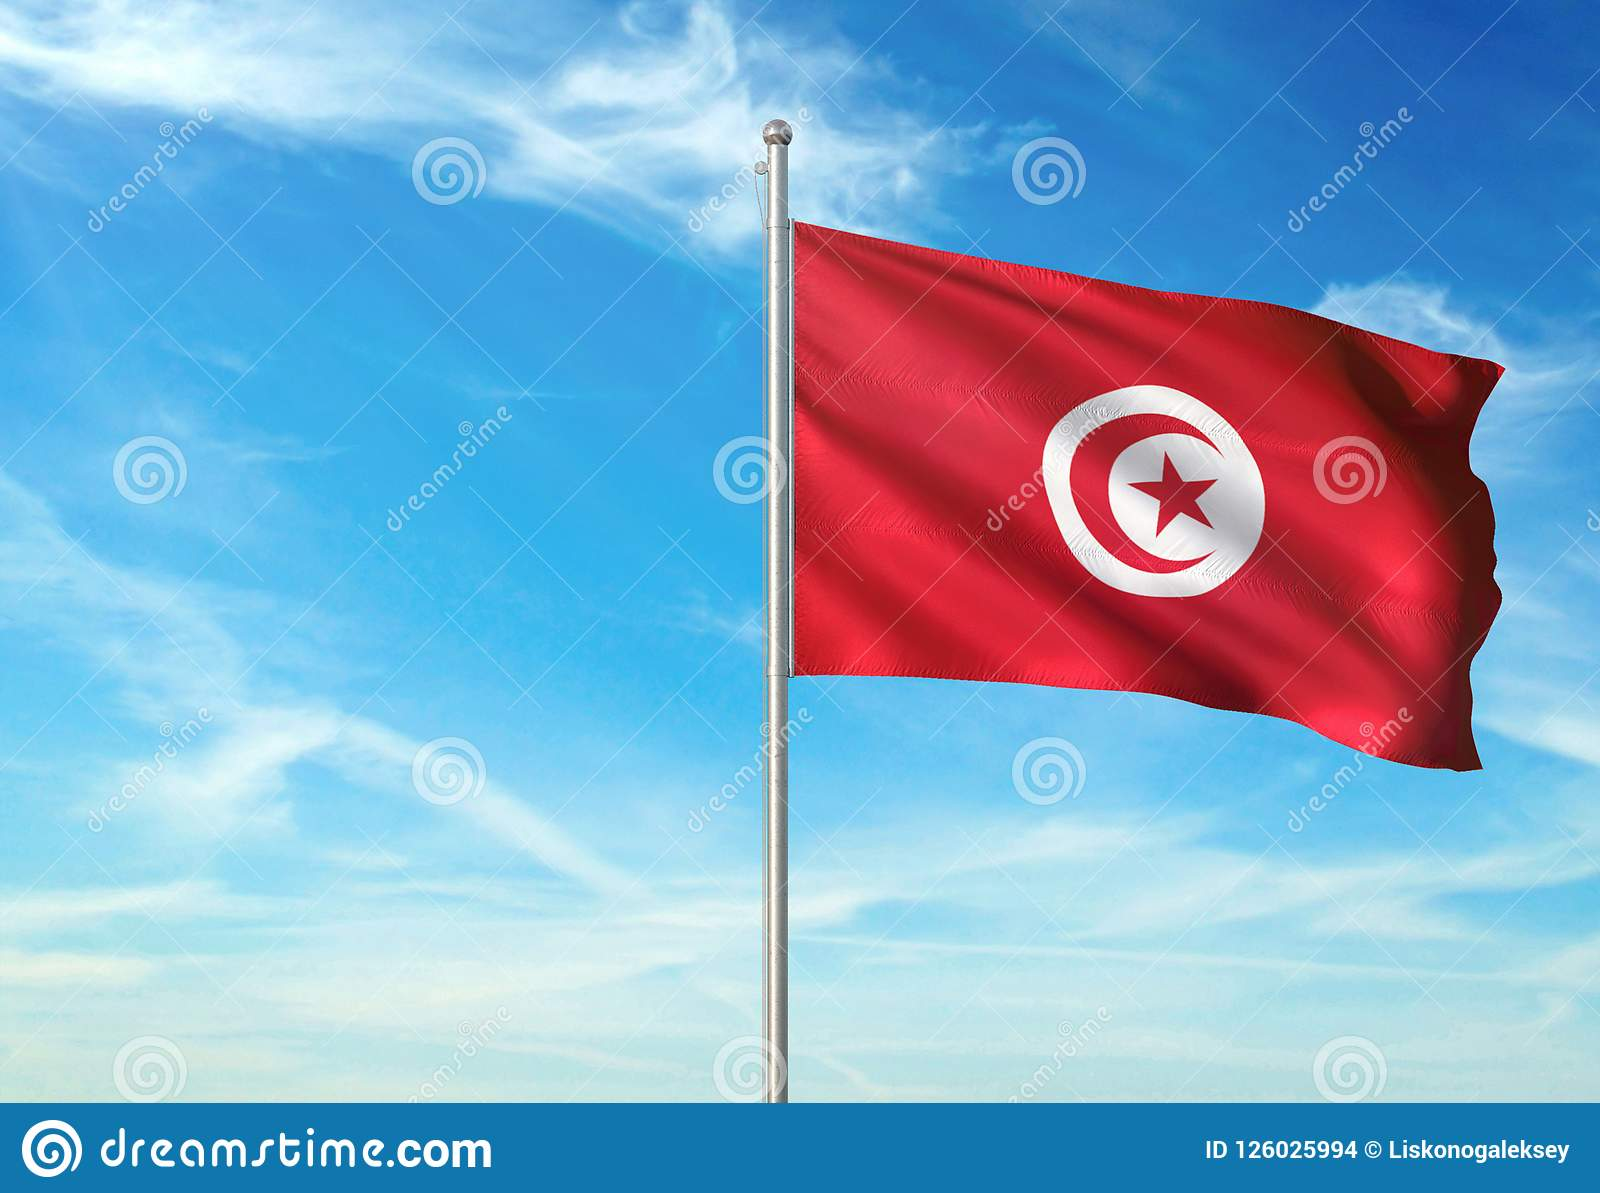 Tunisia Flag Waving With Sky On Background Realistic 3d Illustration